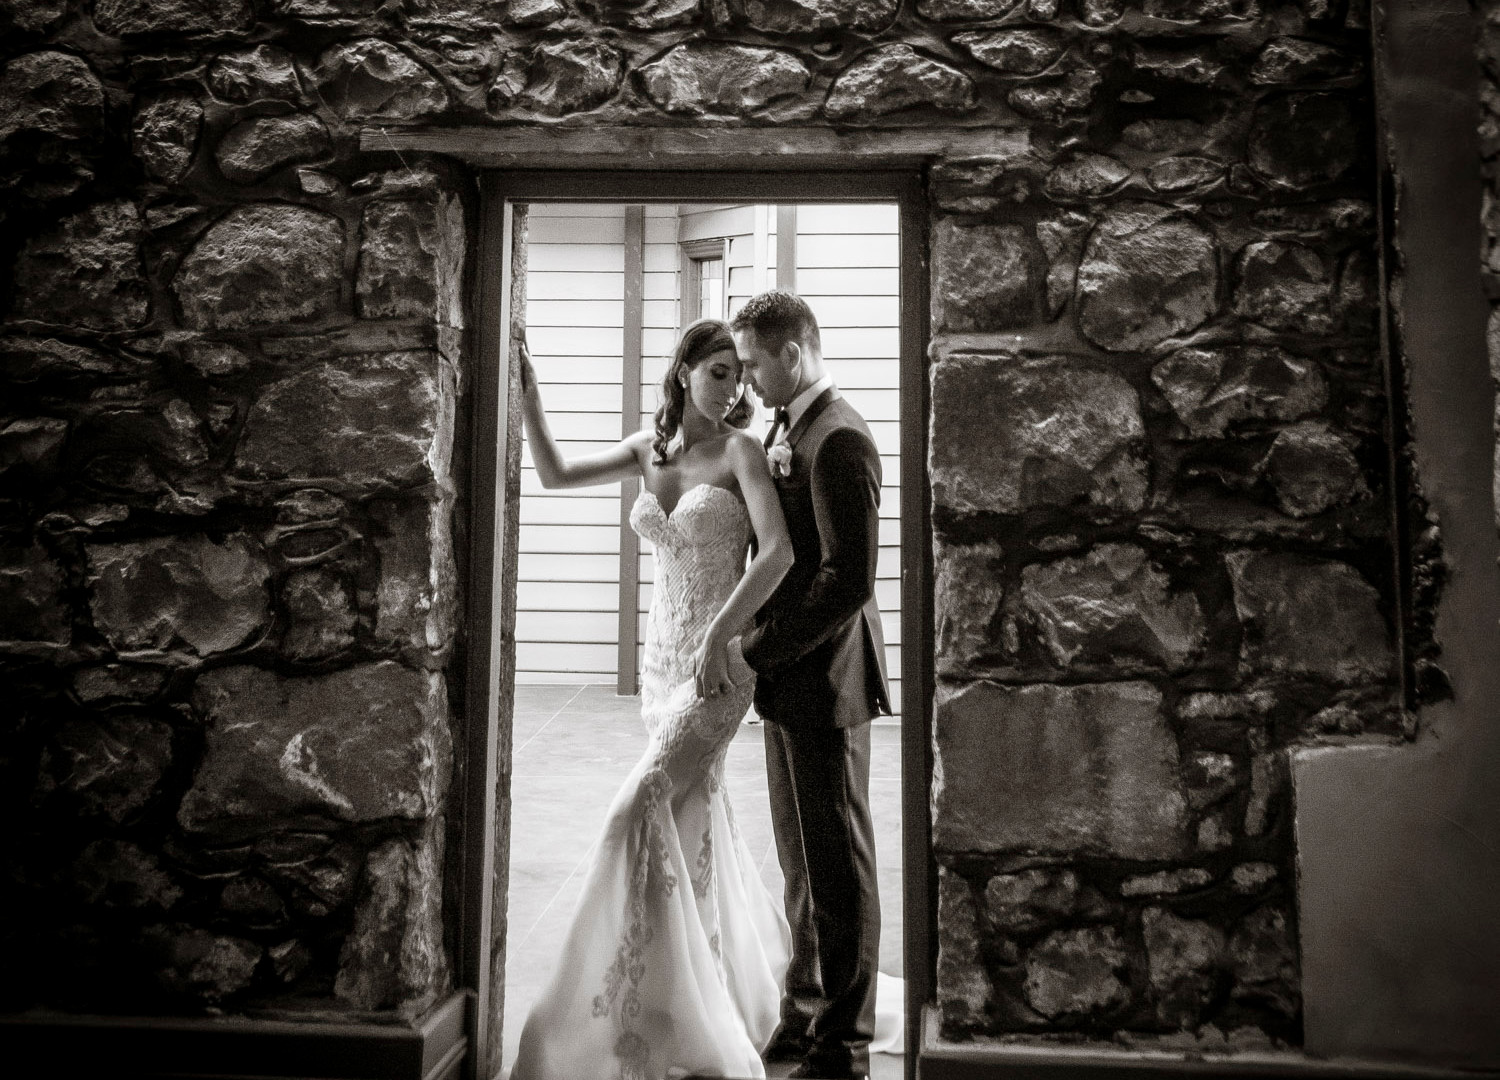 | Meadowbank Estate |Couple In Doorway Wedding Venue | Campbellfield